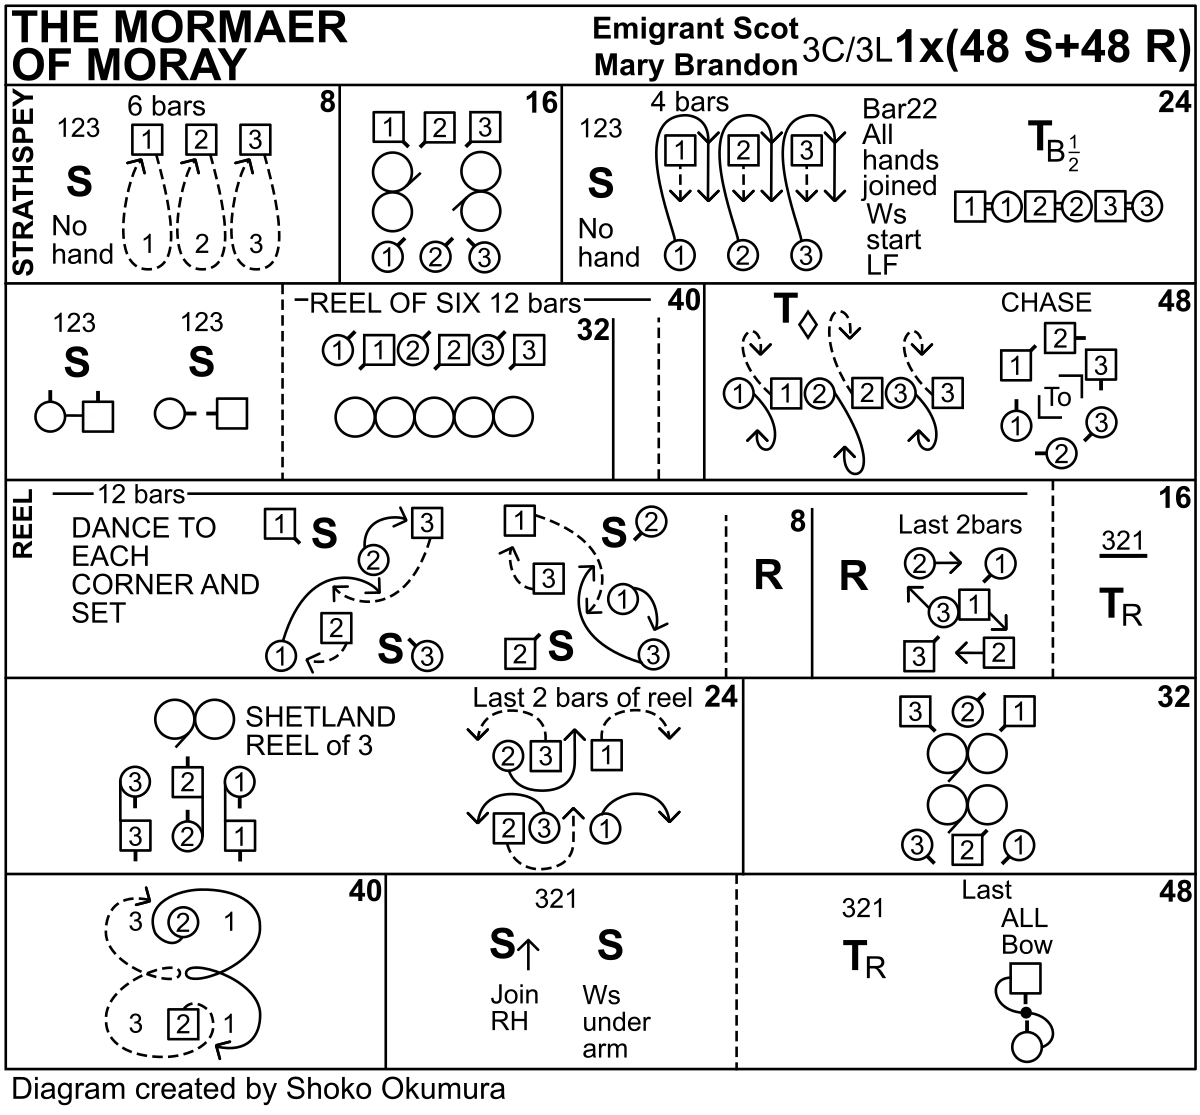 The Mormaer Of Moray Keith Rose's Diagram